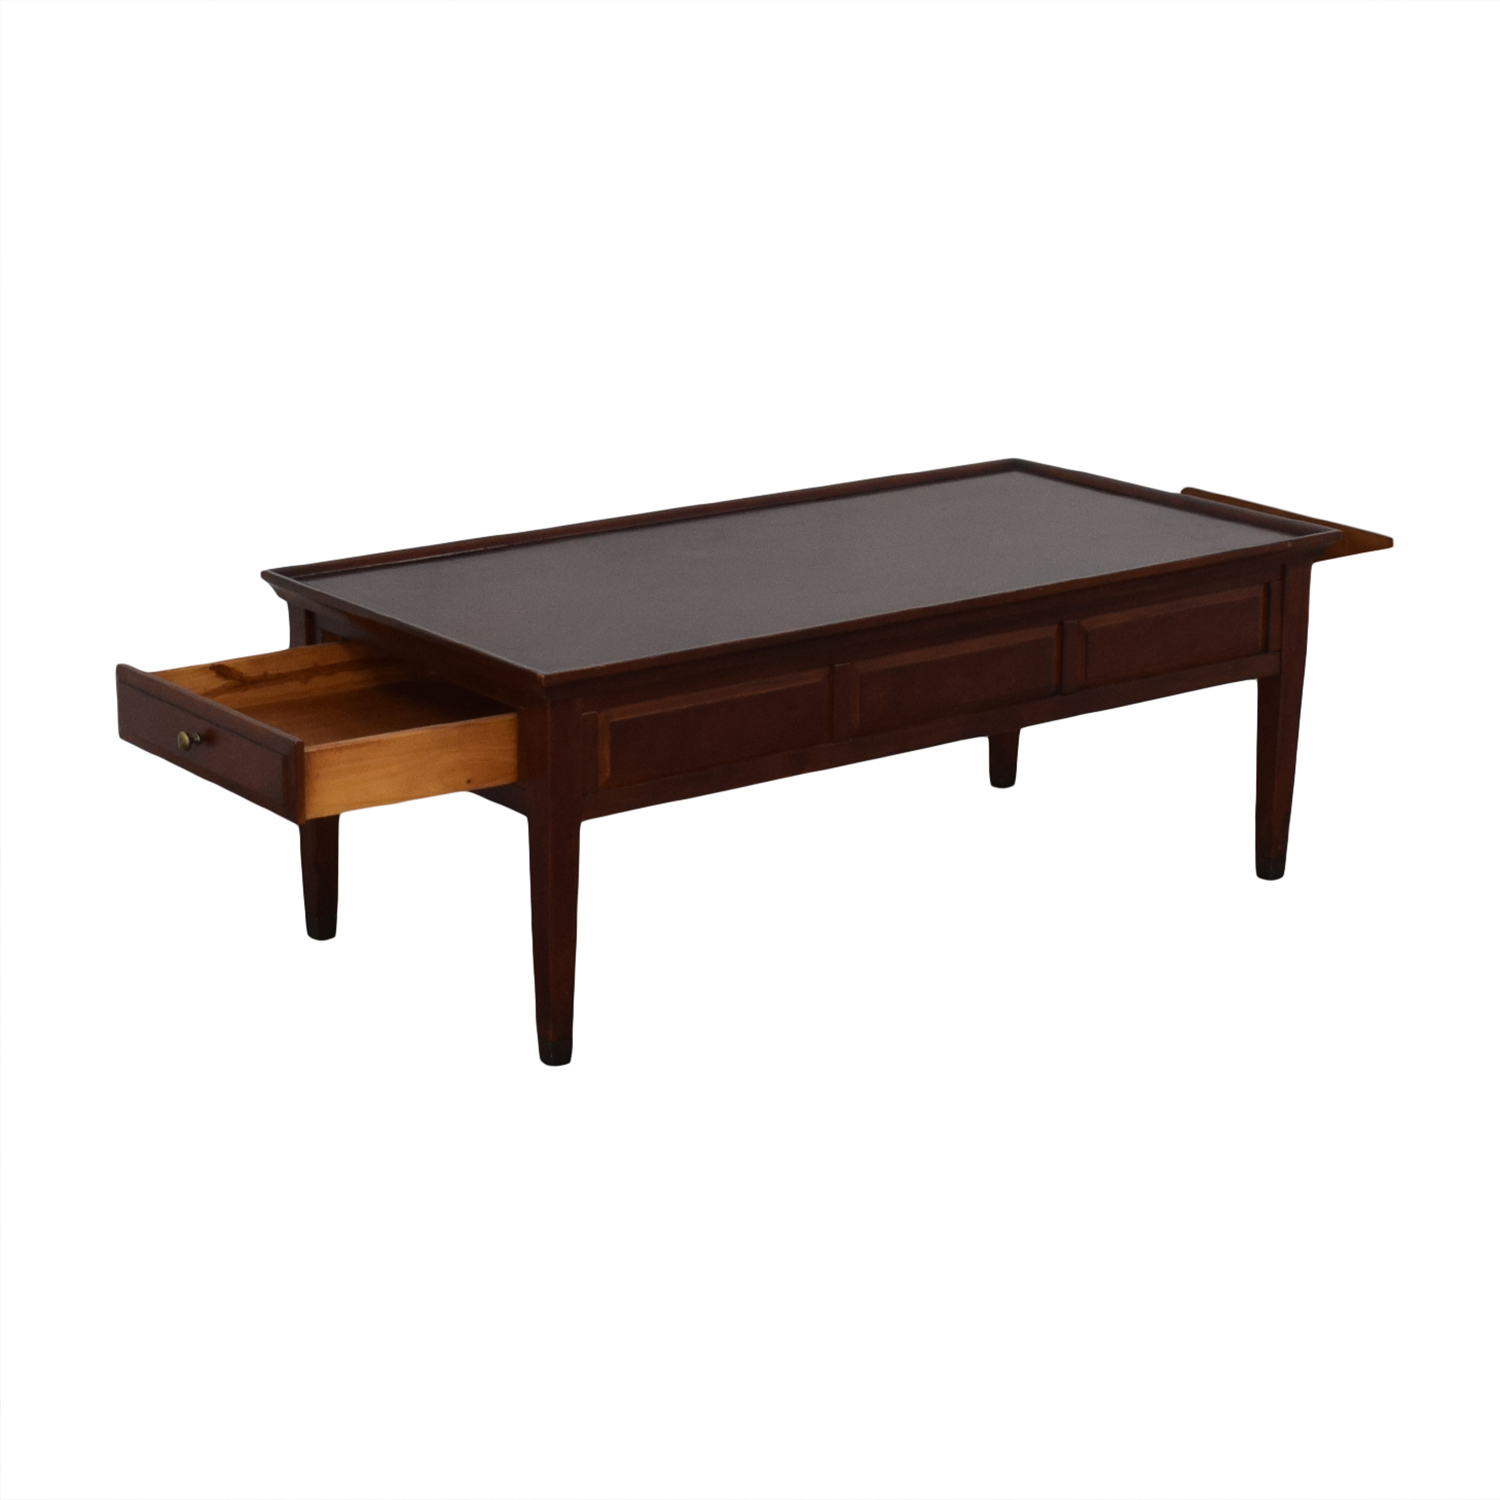 Hammary Furniture Hammary Furniture Coffee Table with Storage Tables